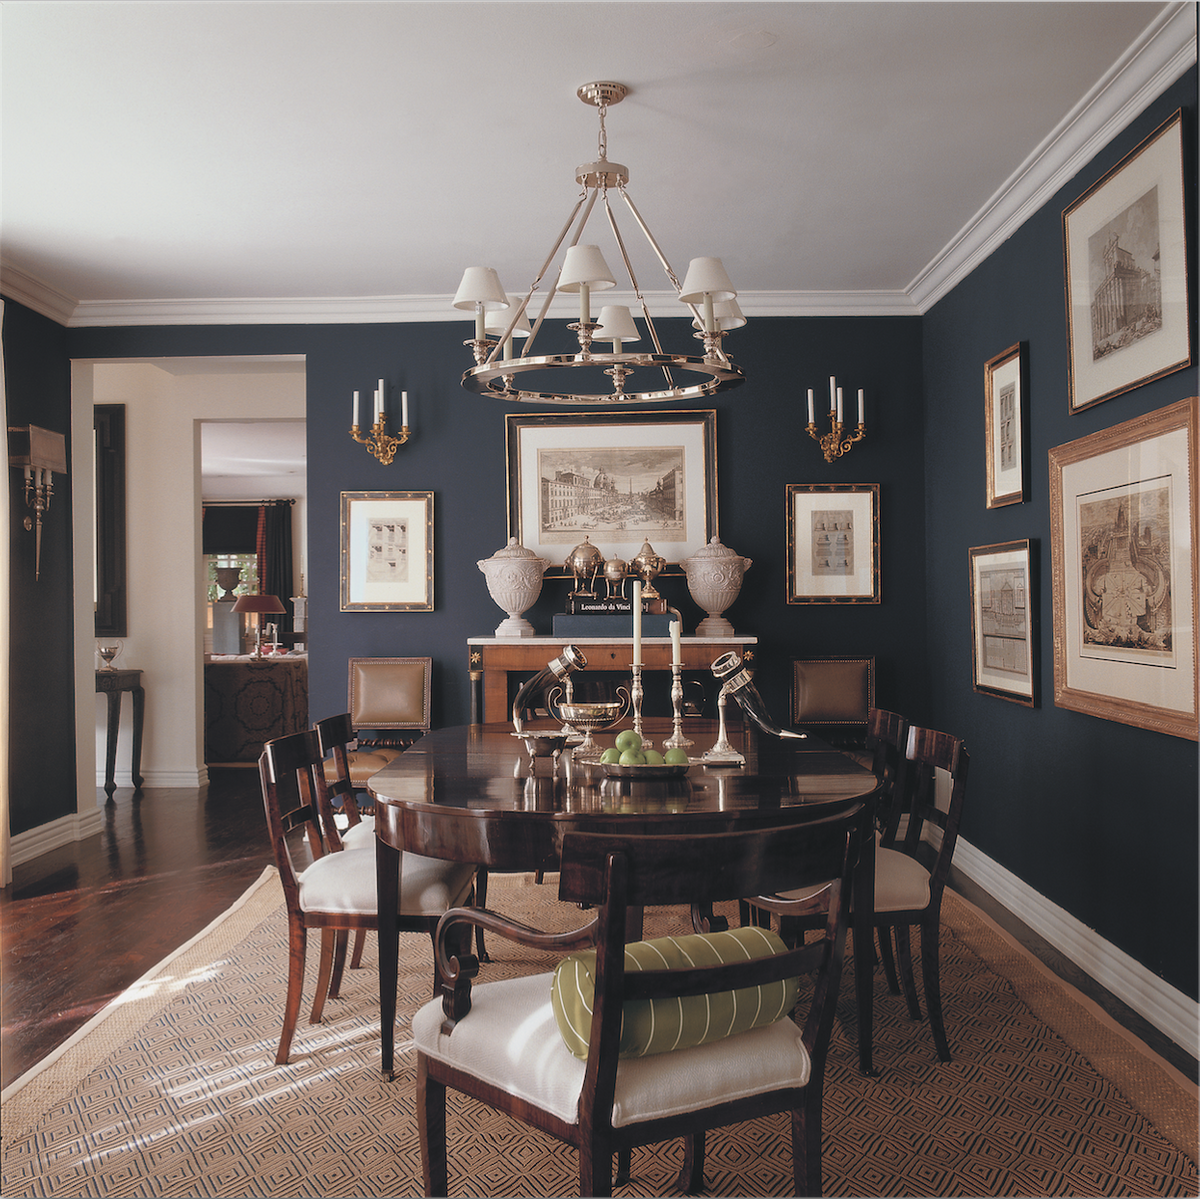 Esszimmerfarbe farbe ideen see more of mary mcdonaldus english bachelor residence on stdibs